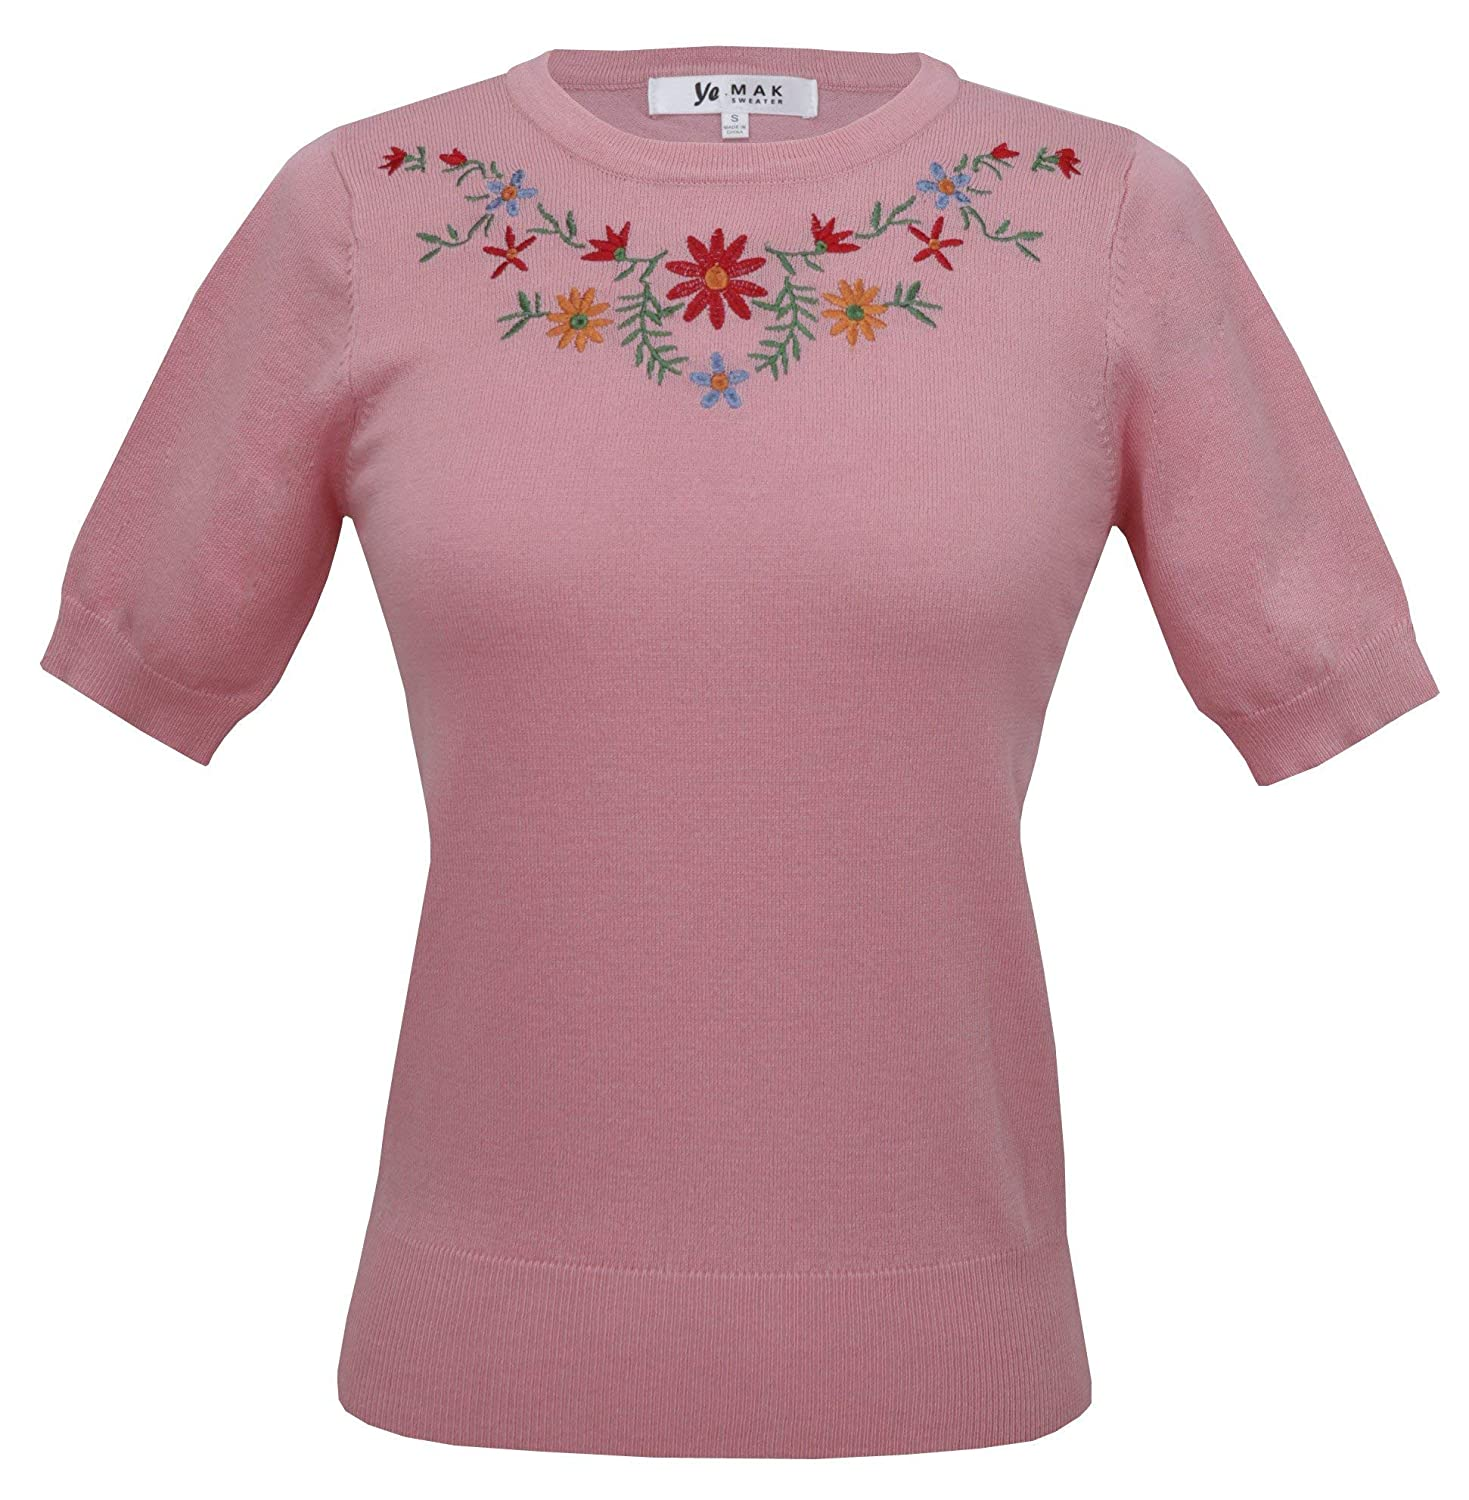 1950s Sweaters, 50s Cardigans, 50s Jumpers YEMAK Daisy Flower Embroidered Cute Pullover Sweater Vintage Inspired MK3664EMBO(S-L) $21.50 AT vintagedancer.com